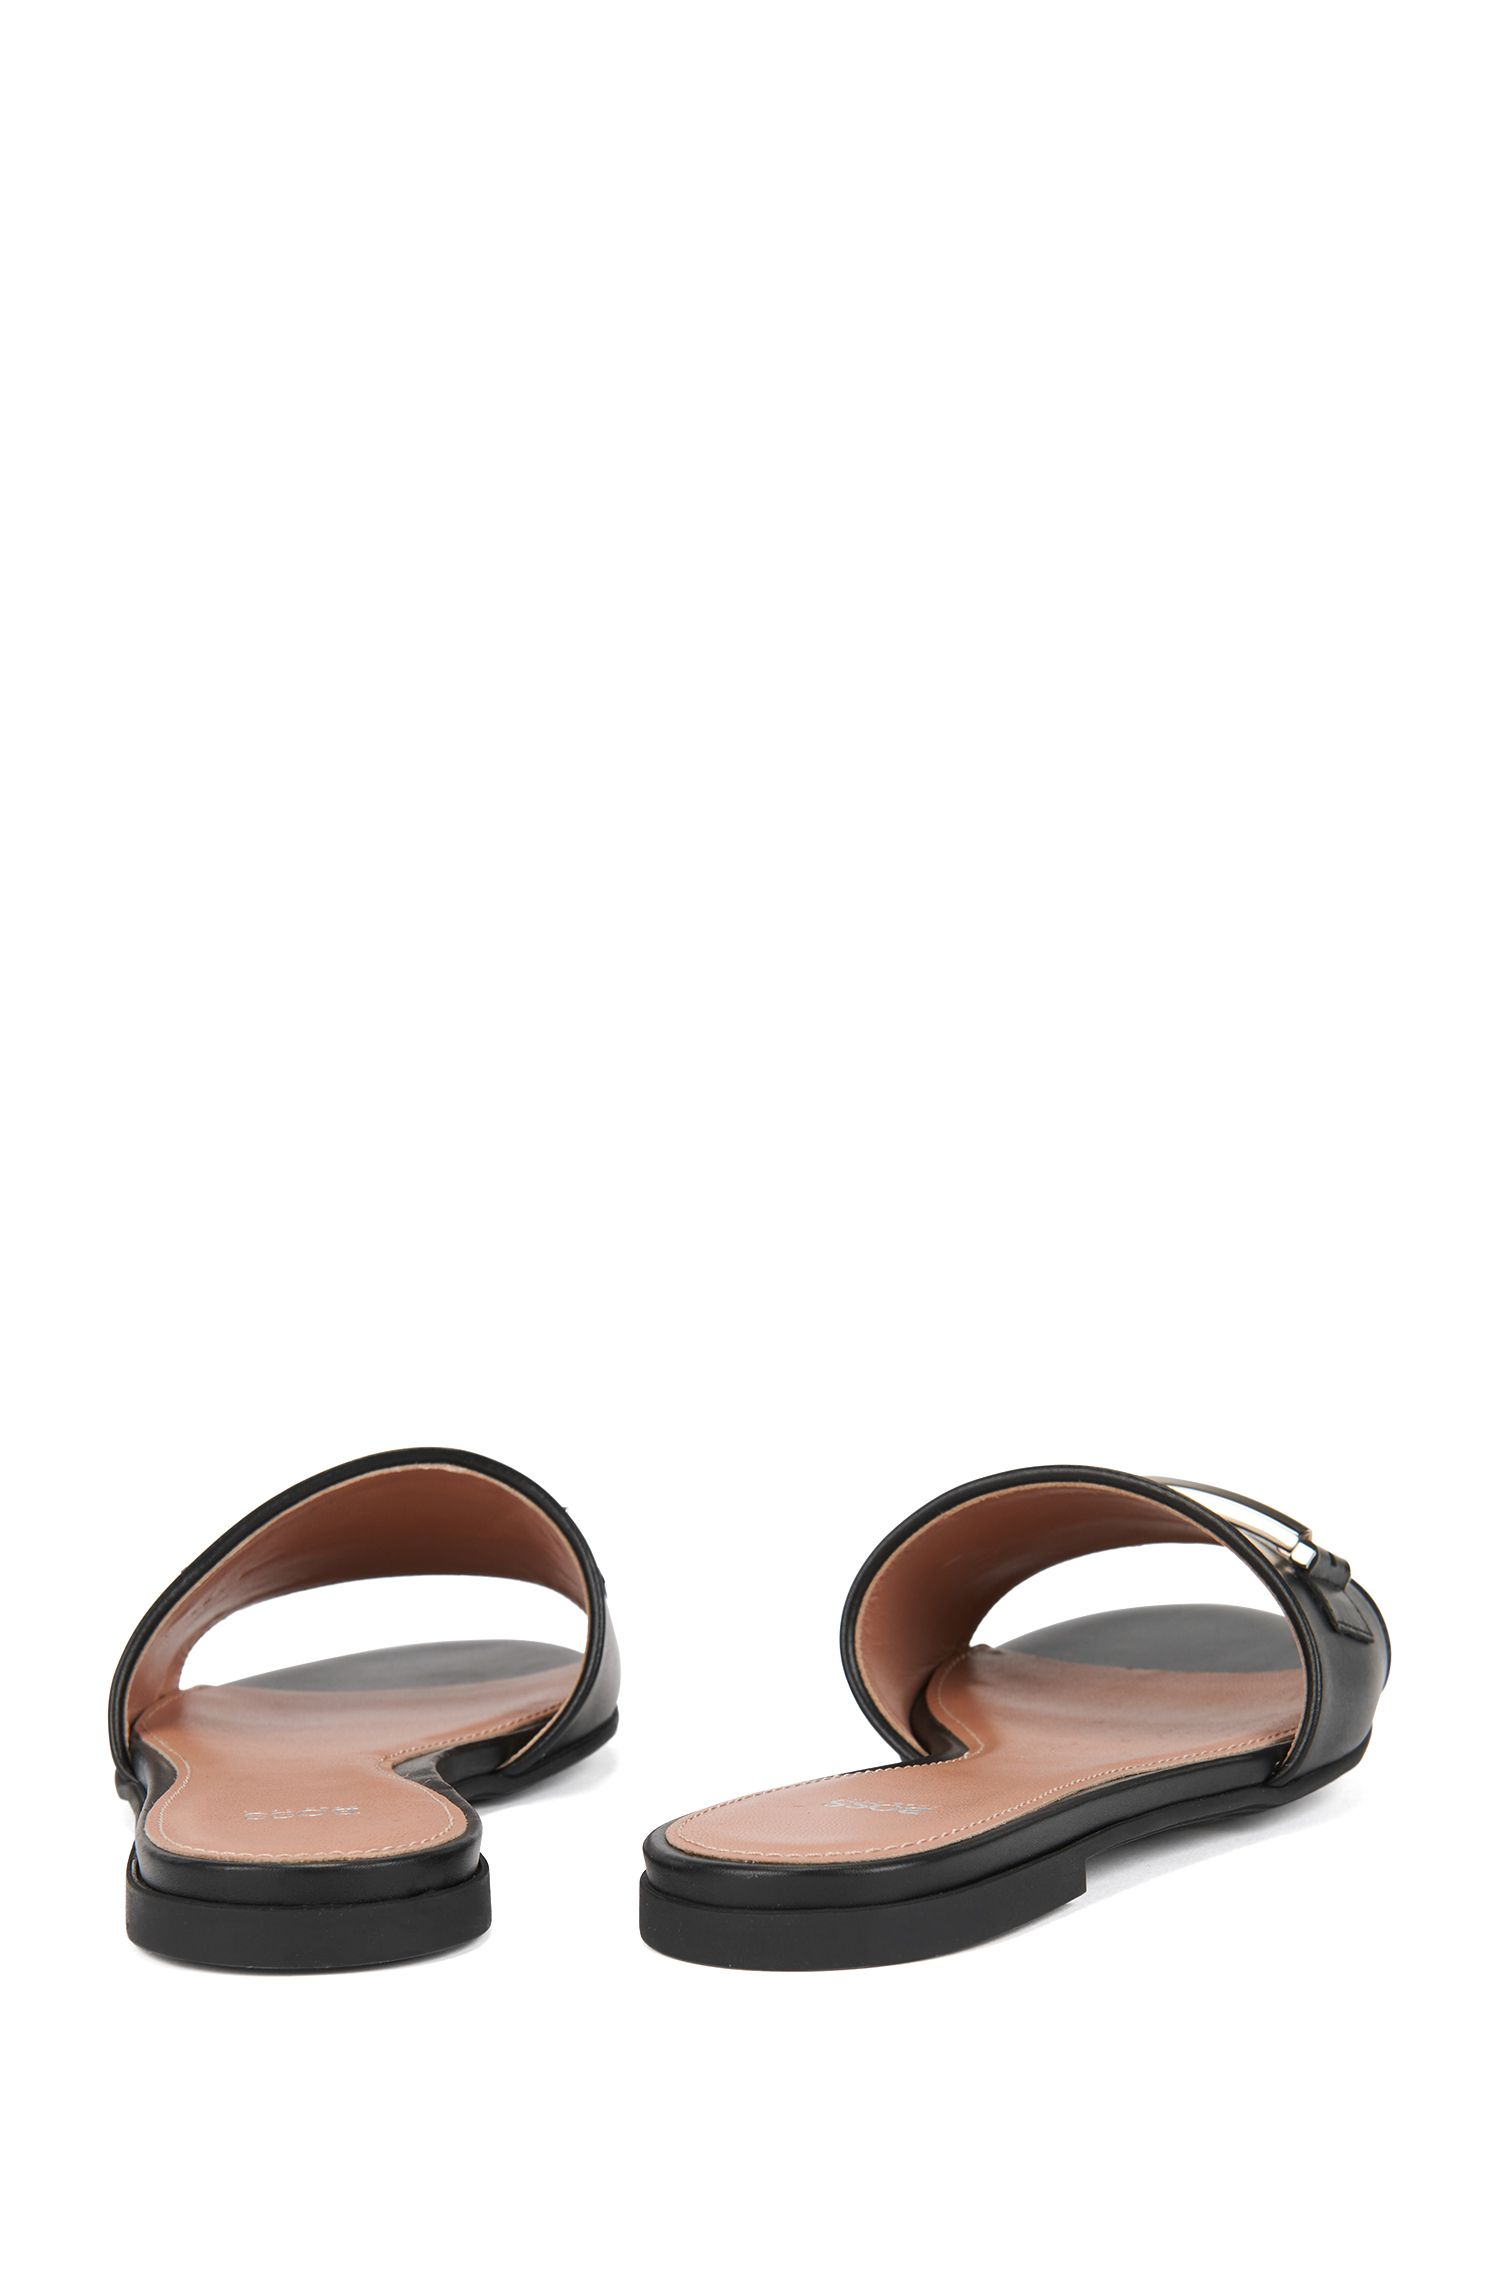 Hardware-trimmed slides in Italian leather